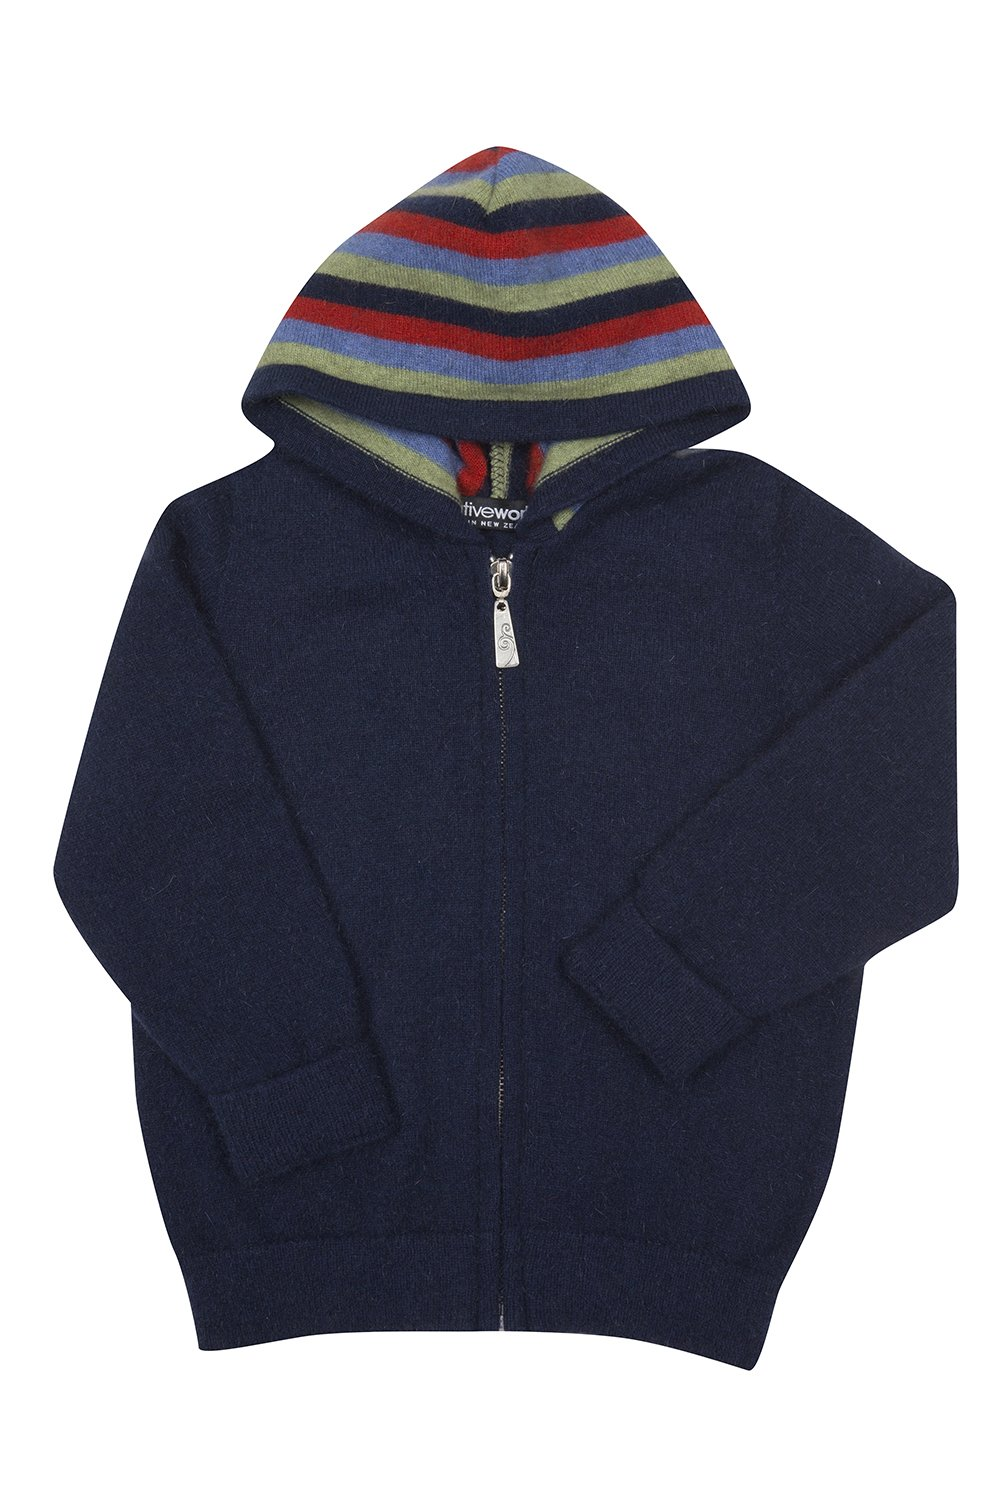 STRIPED ZIP HOODIE - Woolshed Gallery